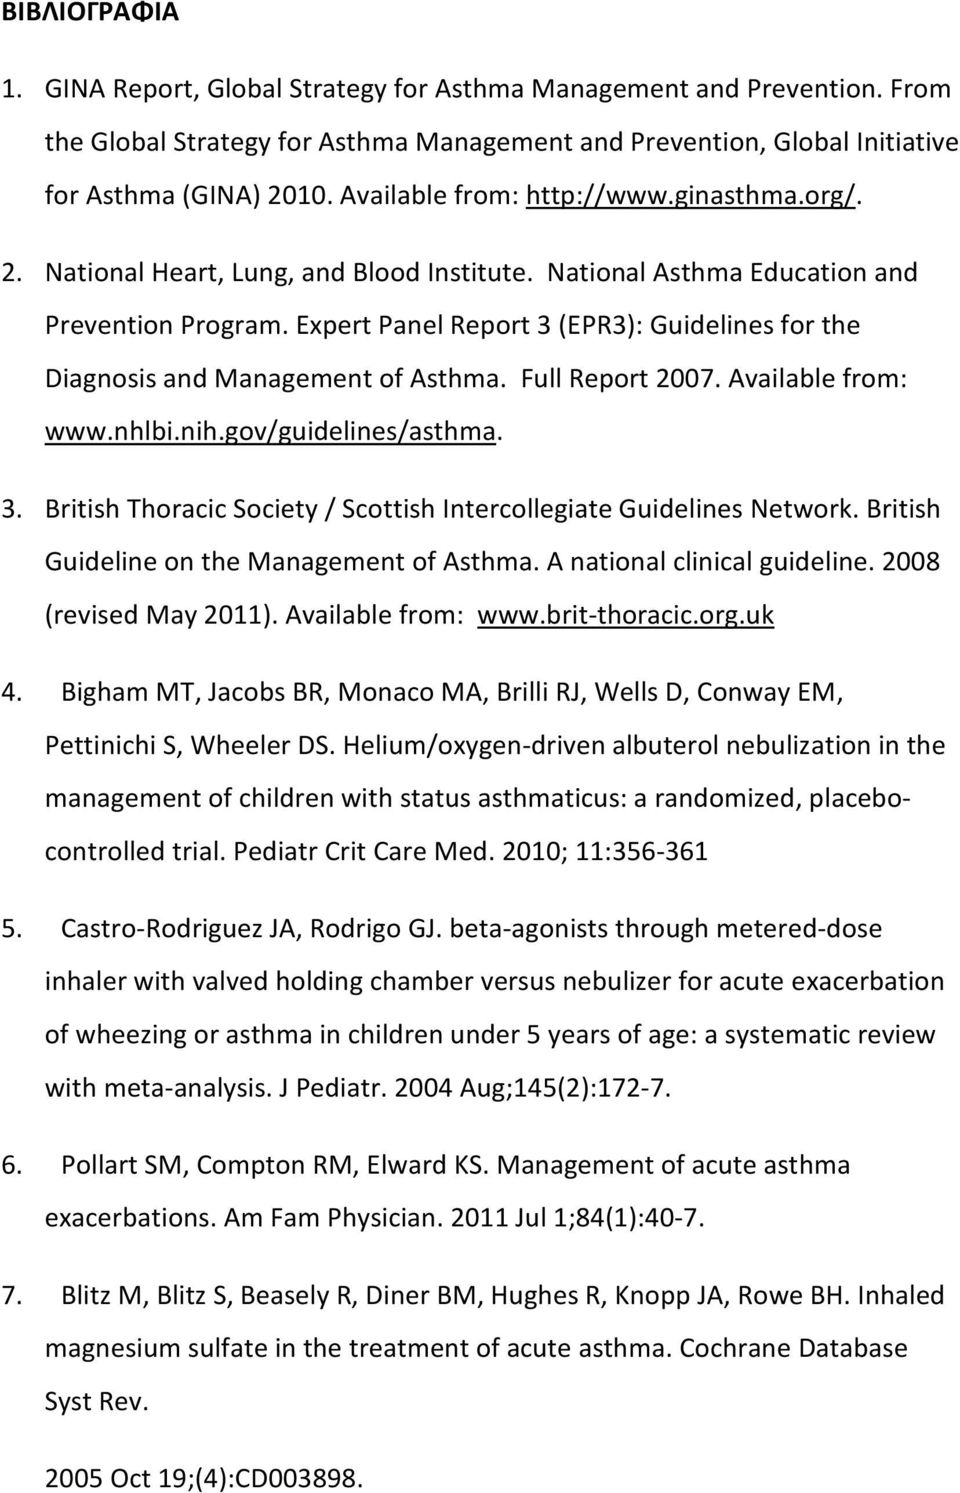 Expert Panel Report 3 (EPR3): Guidelines for the Diagnosis and Management of Asthma. Full Report 2007. Available from: www.nhlbi.nih.gov/guidelines/asthma. 3. British Thoracic Society / Scottish Intercollegiate Guidelines Network.